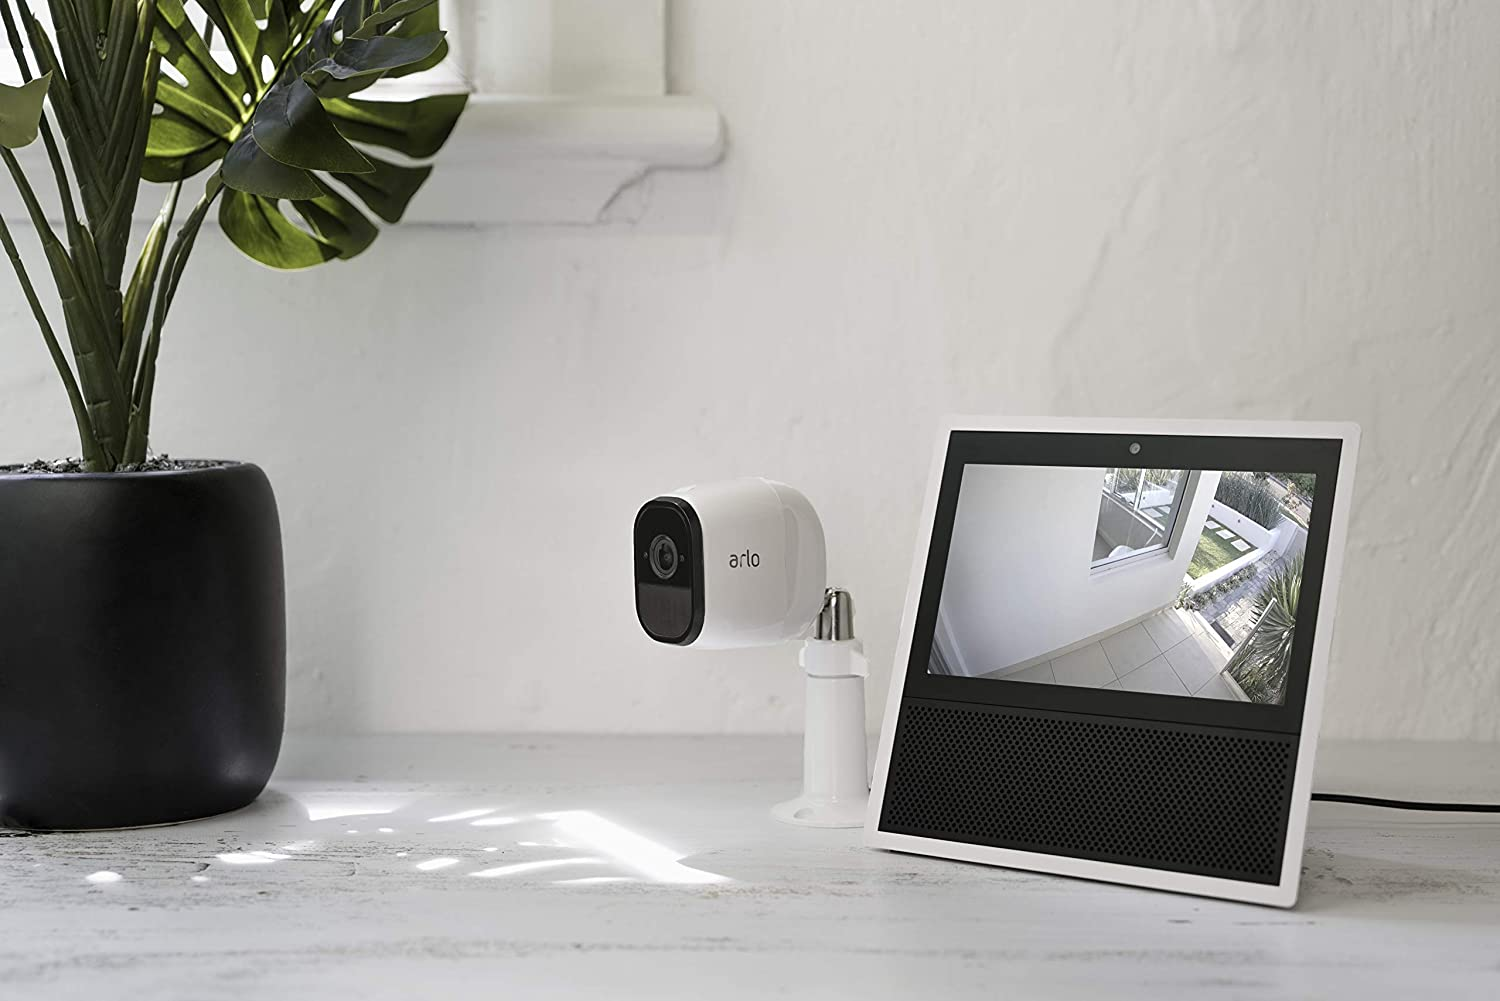 Arlo Pro Wire-Free HD Home Security 2 Camera System VMS4330 One Security System